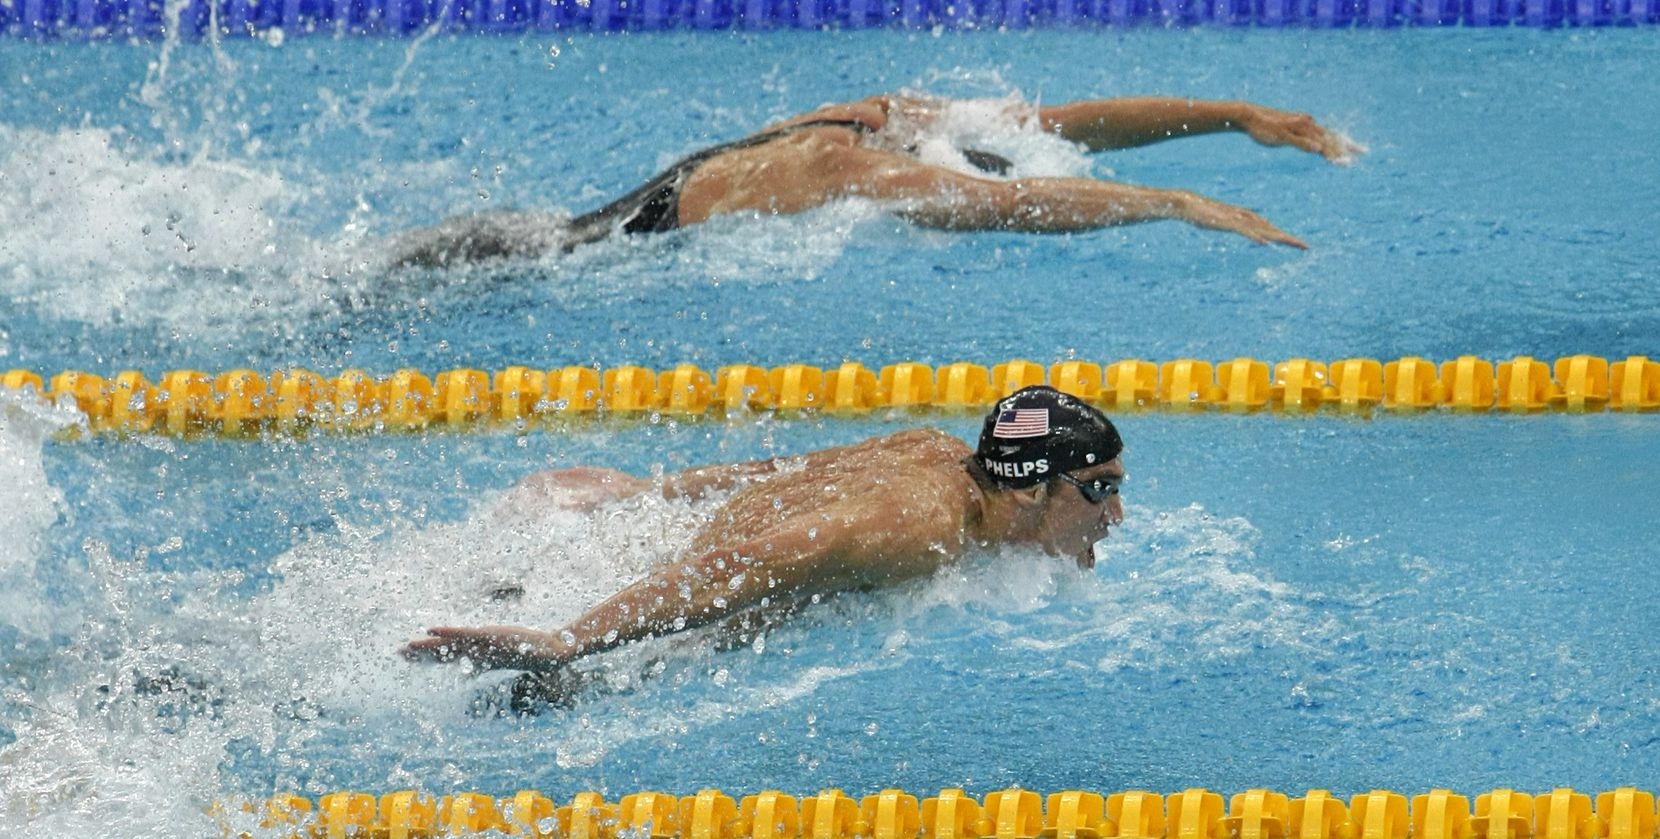 FILE - Michael Phelps of the U.S. (bottom) races the third leg of the men's 4x100M medley relay on Sunday, Aug. 17, 2008, at the National Aquatics Center in Beijing, China.